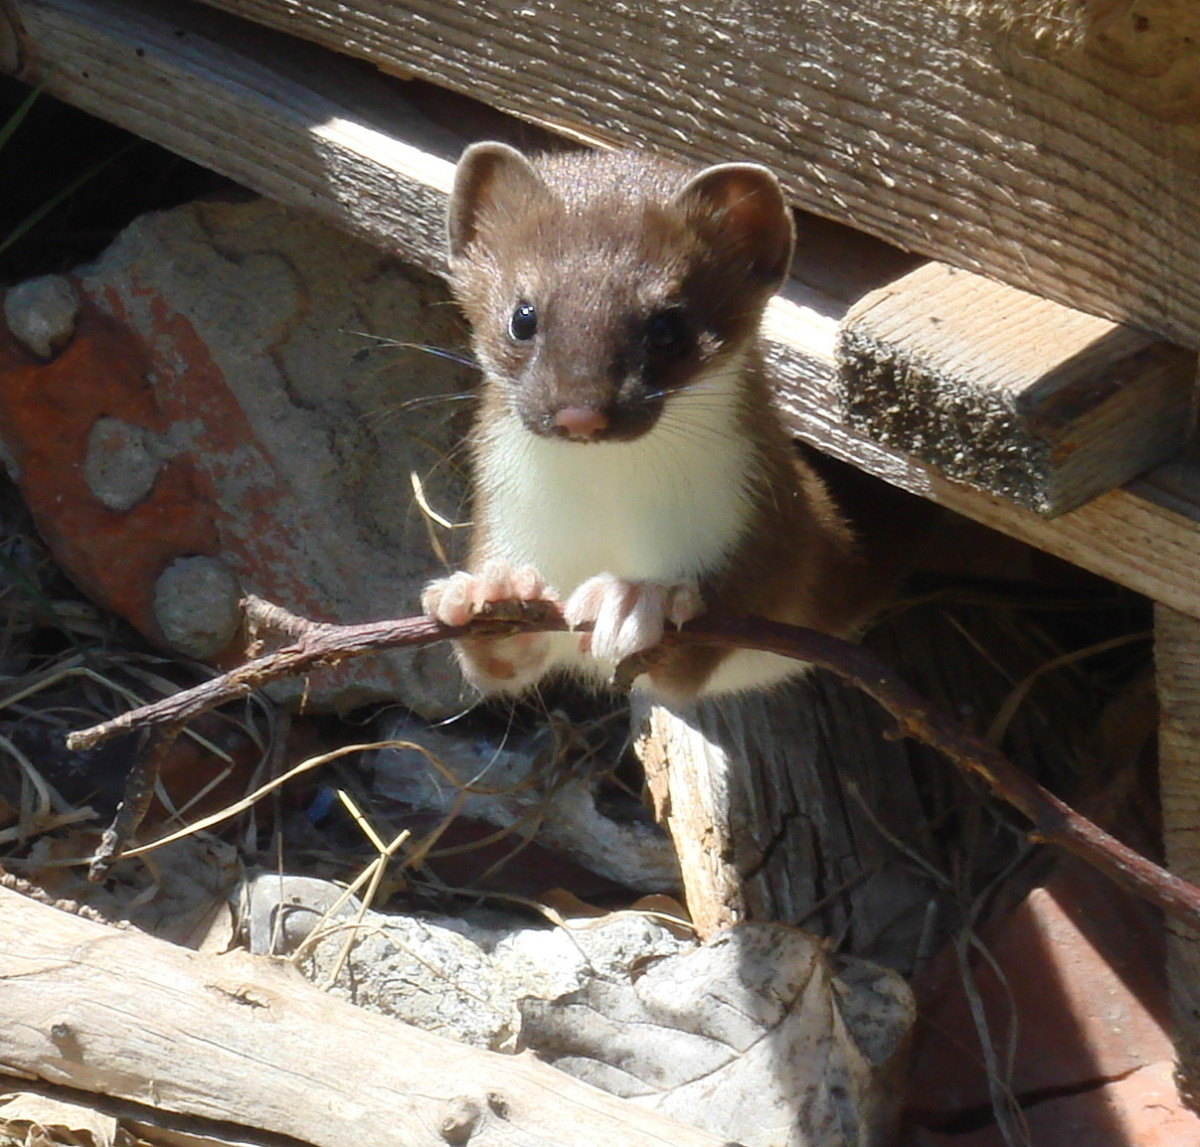 A least weasel, one of many weasel species you may encounter in North America.